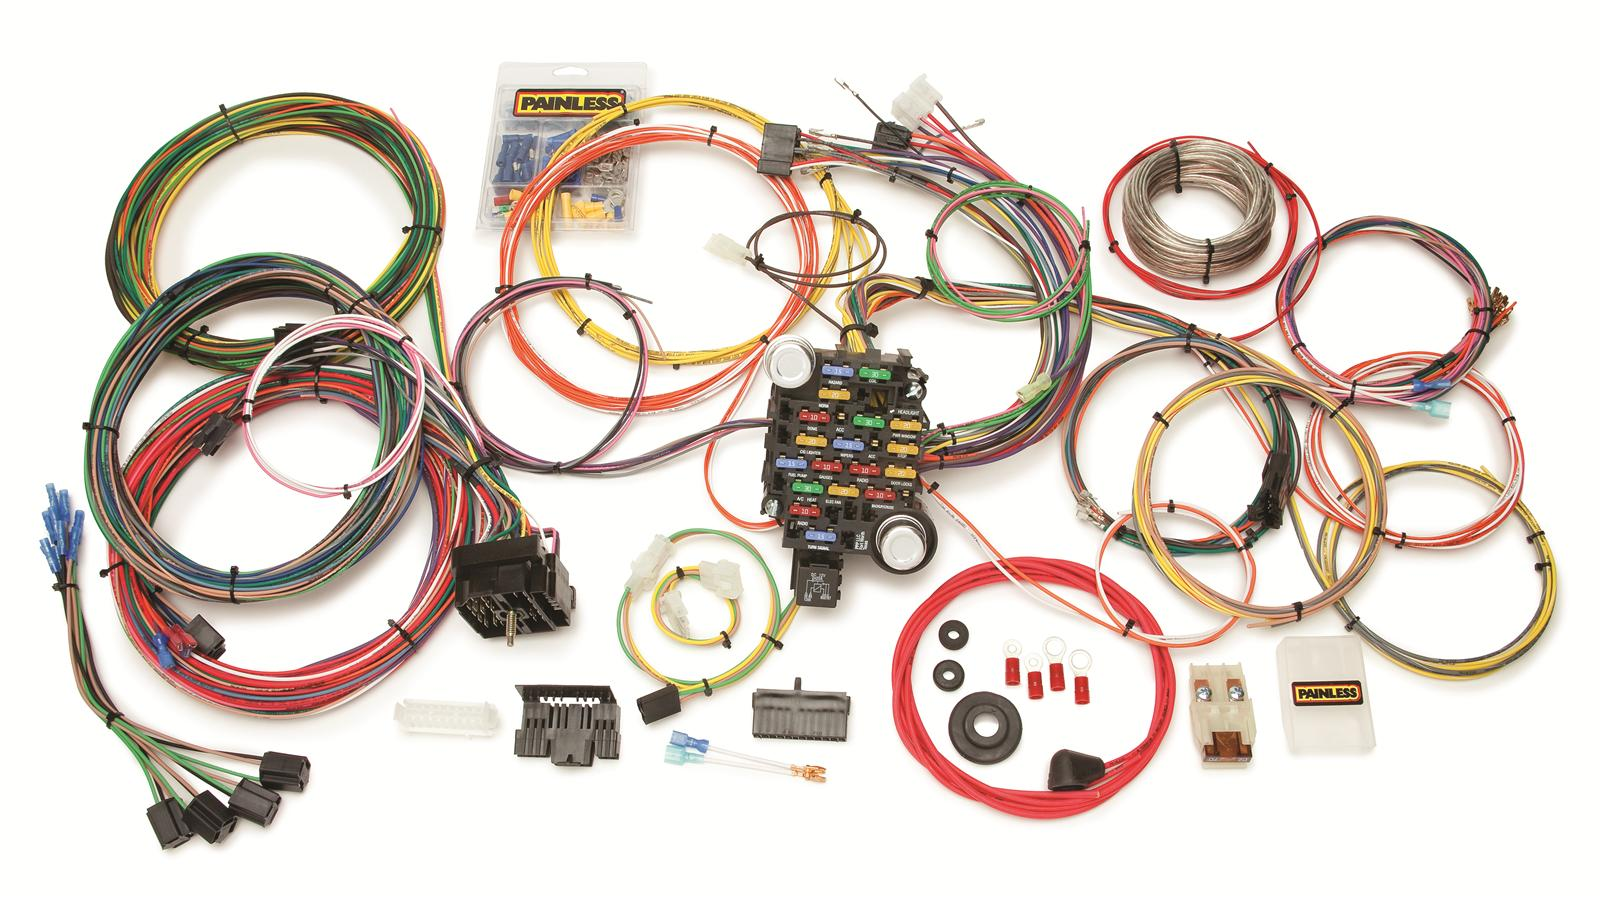 prf 10205_xl painless performance gmc chevy truck harnesses 10205 free gm truck wiring harness at honlapkeszites.co